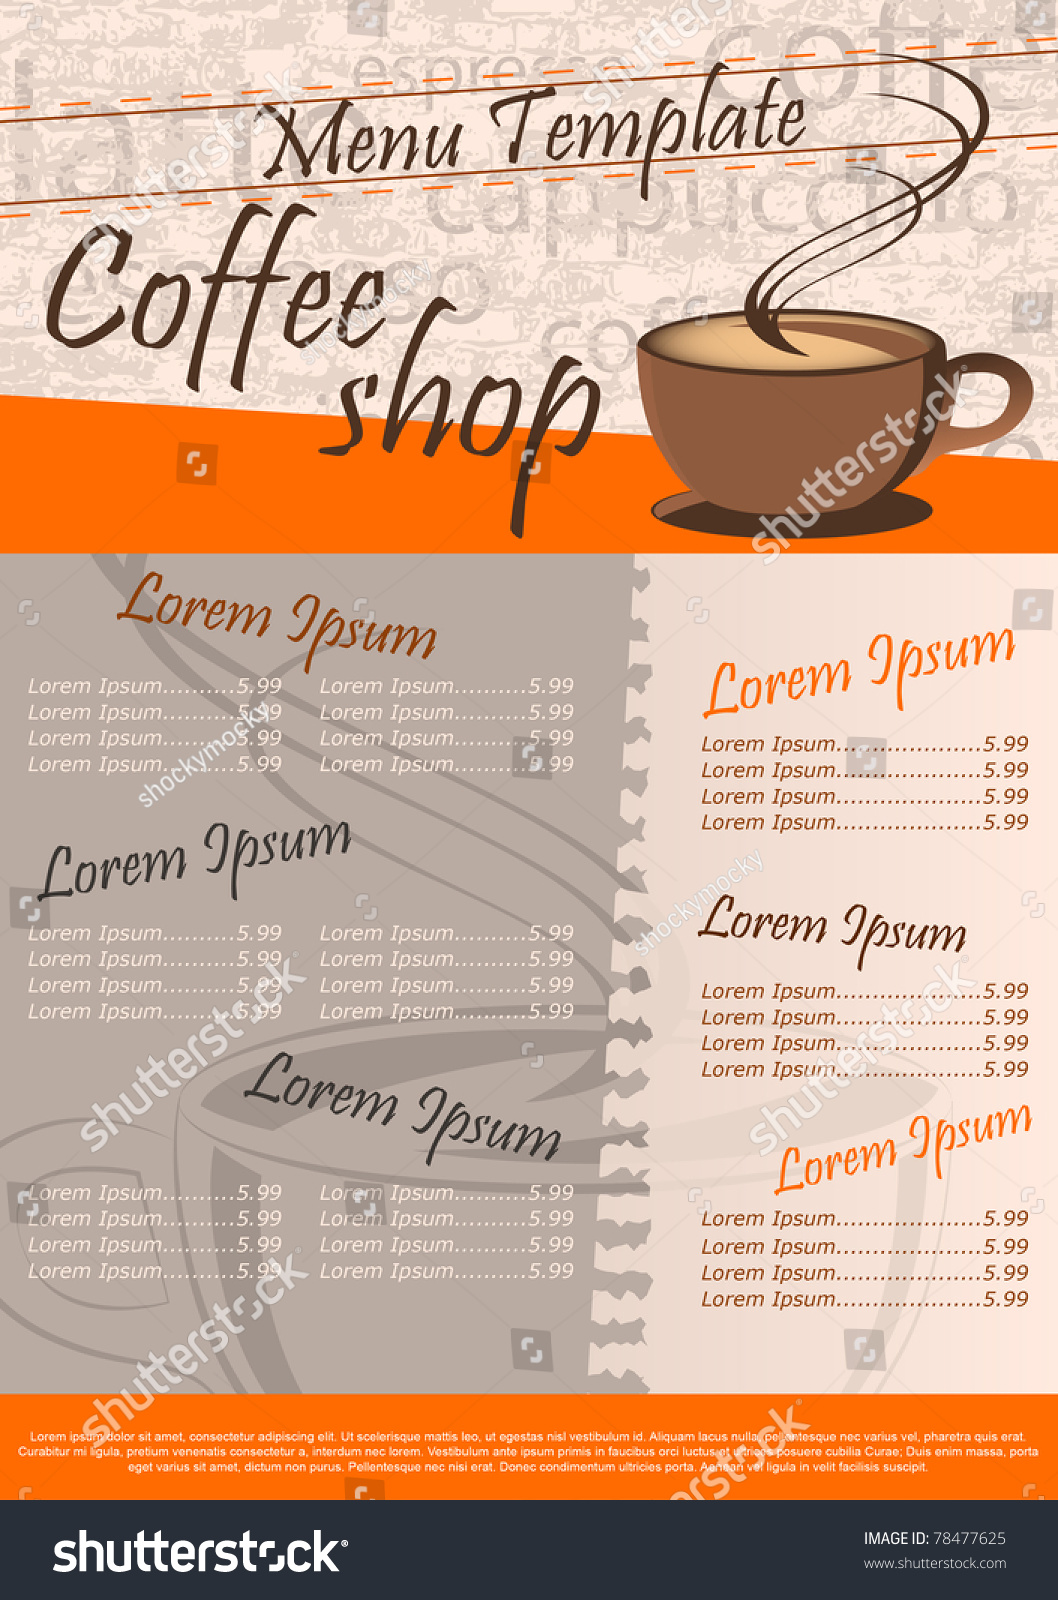 coffee shop menu template vector illustration stock vector